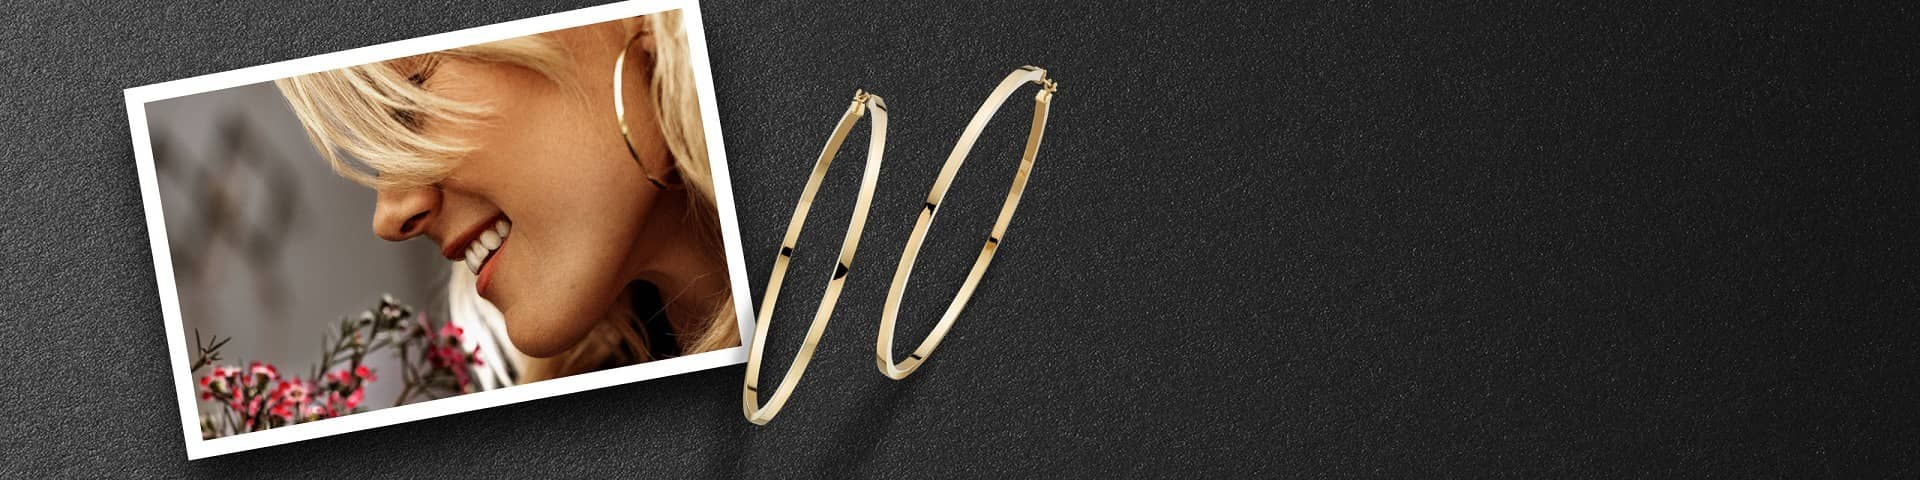 Gold hoop earrings rest against a portrait of a woman modeling the same pair of earrings.